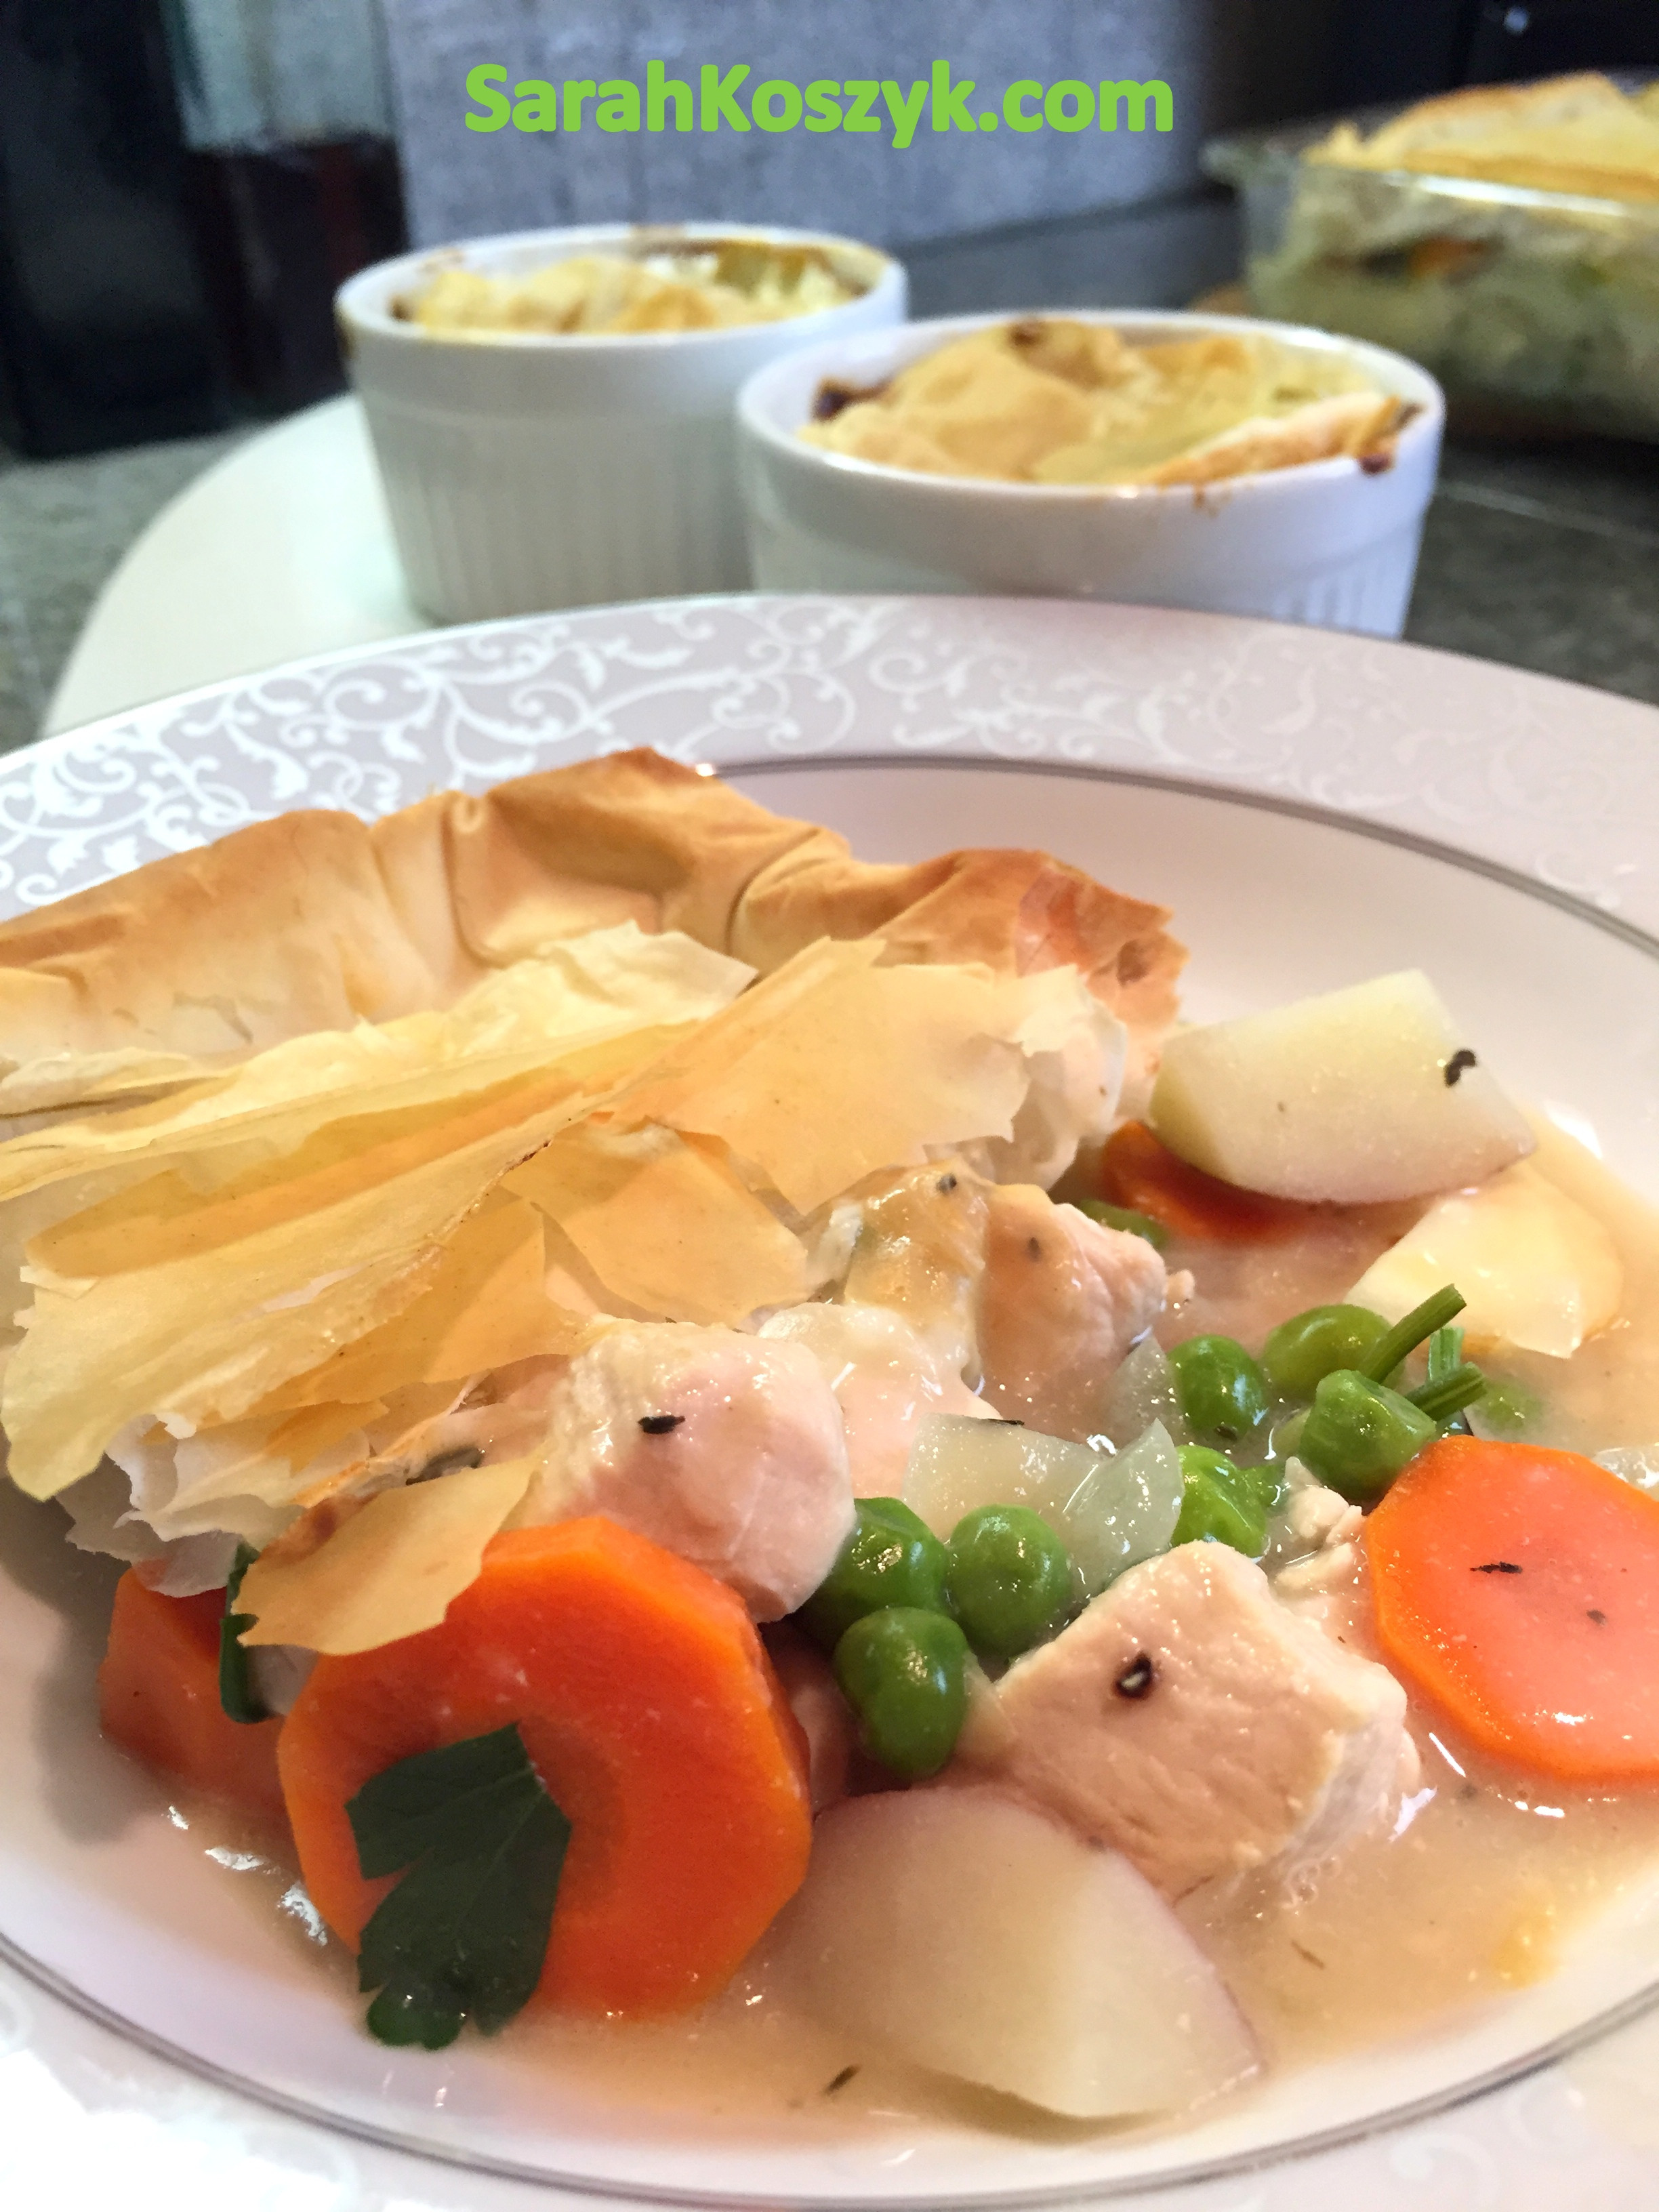 Low Calorie Chicken Pot Pie  Healthy and Low Fat Chicken Pot Pie Sarah Koszyk Family